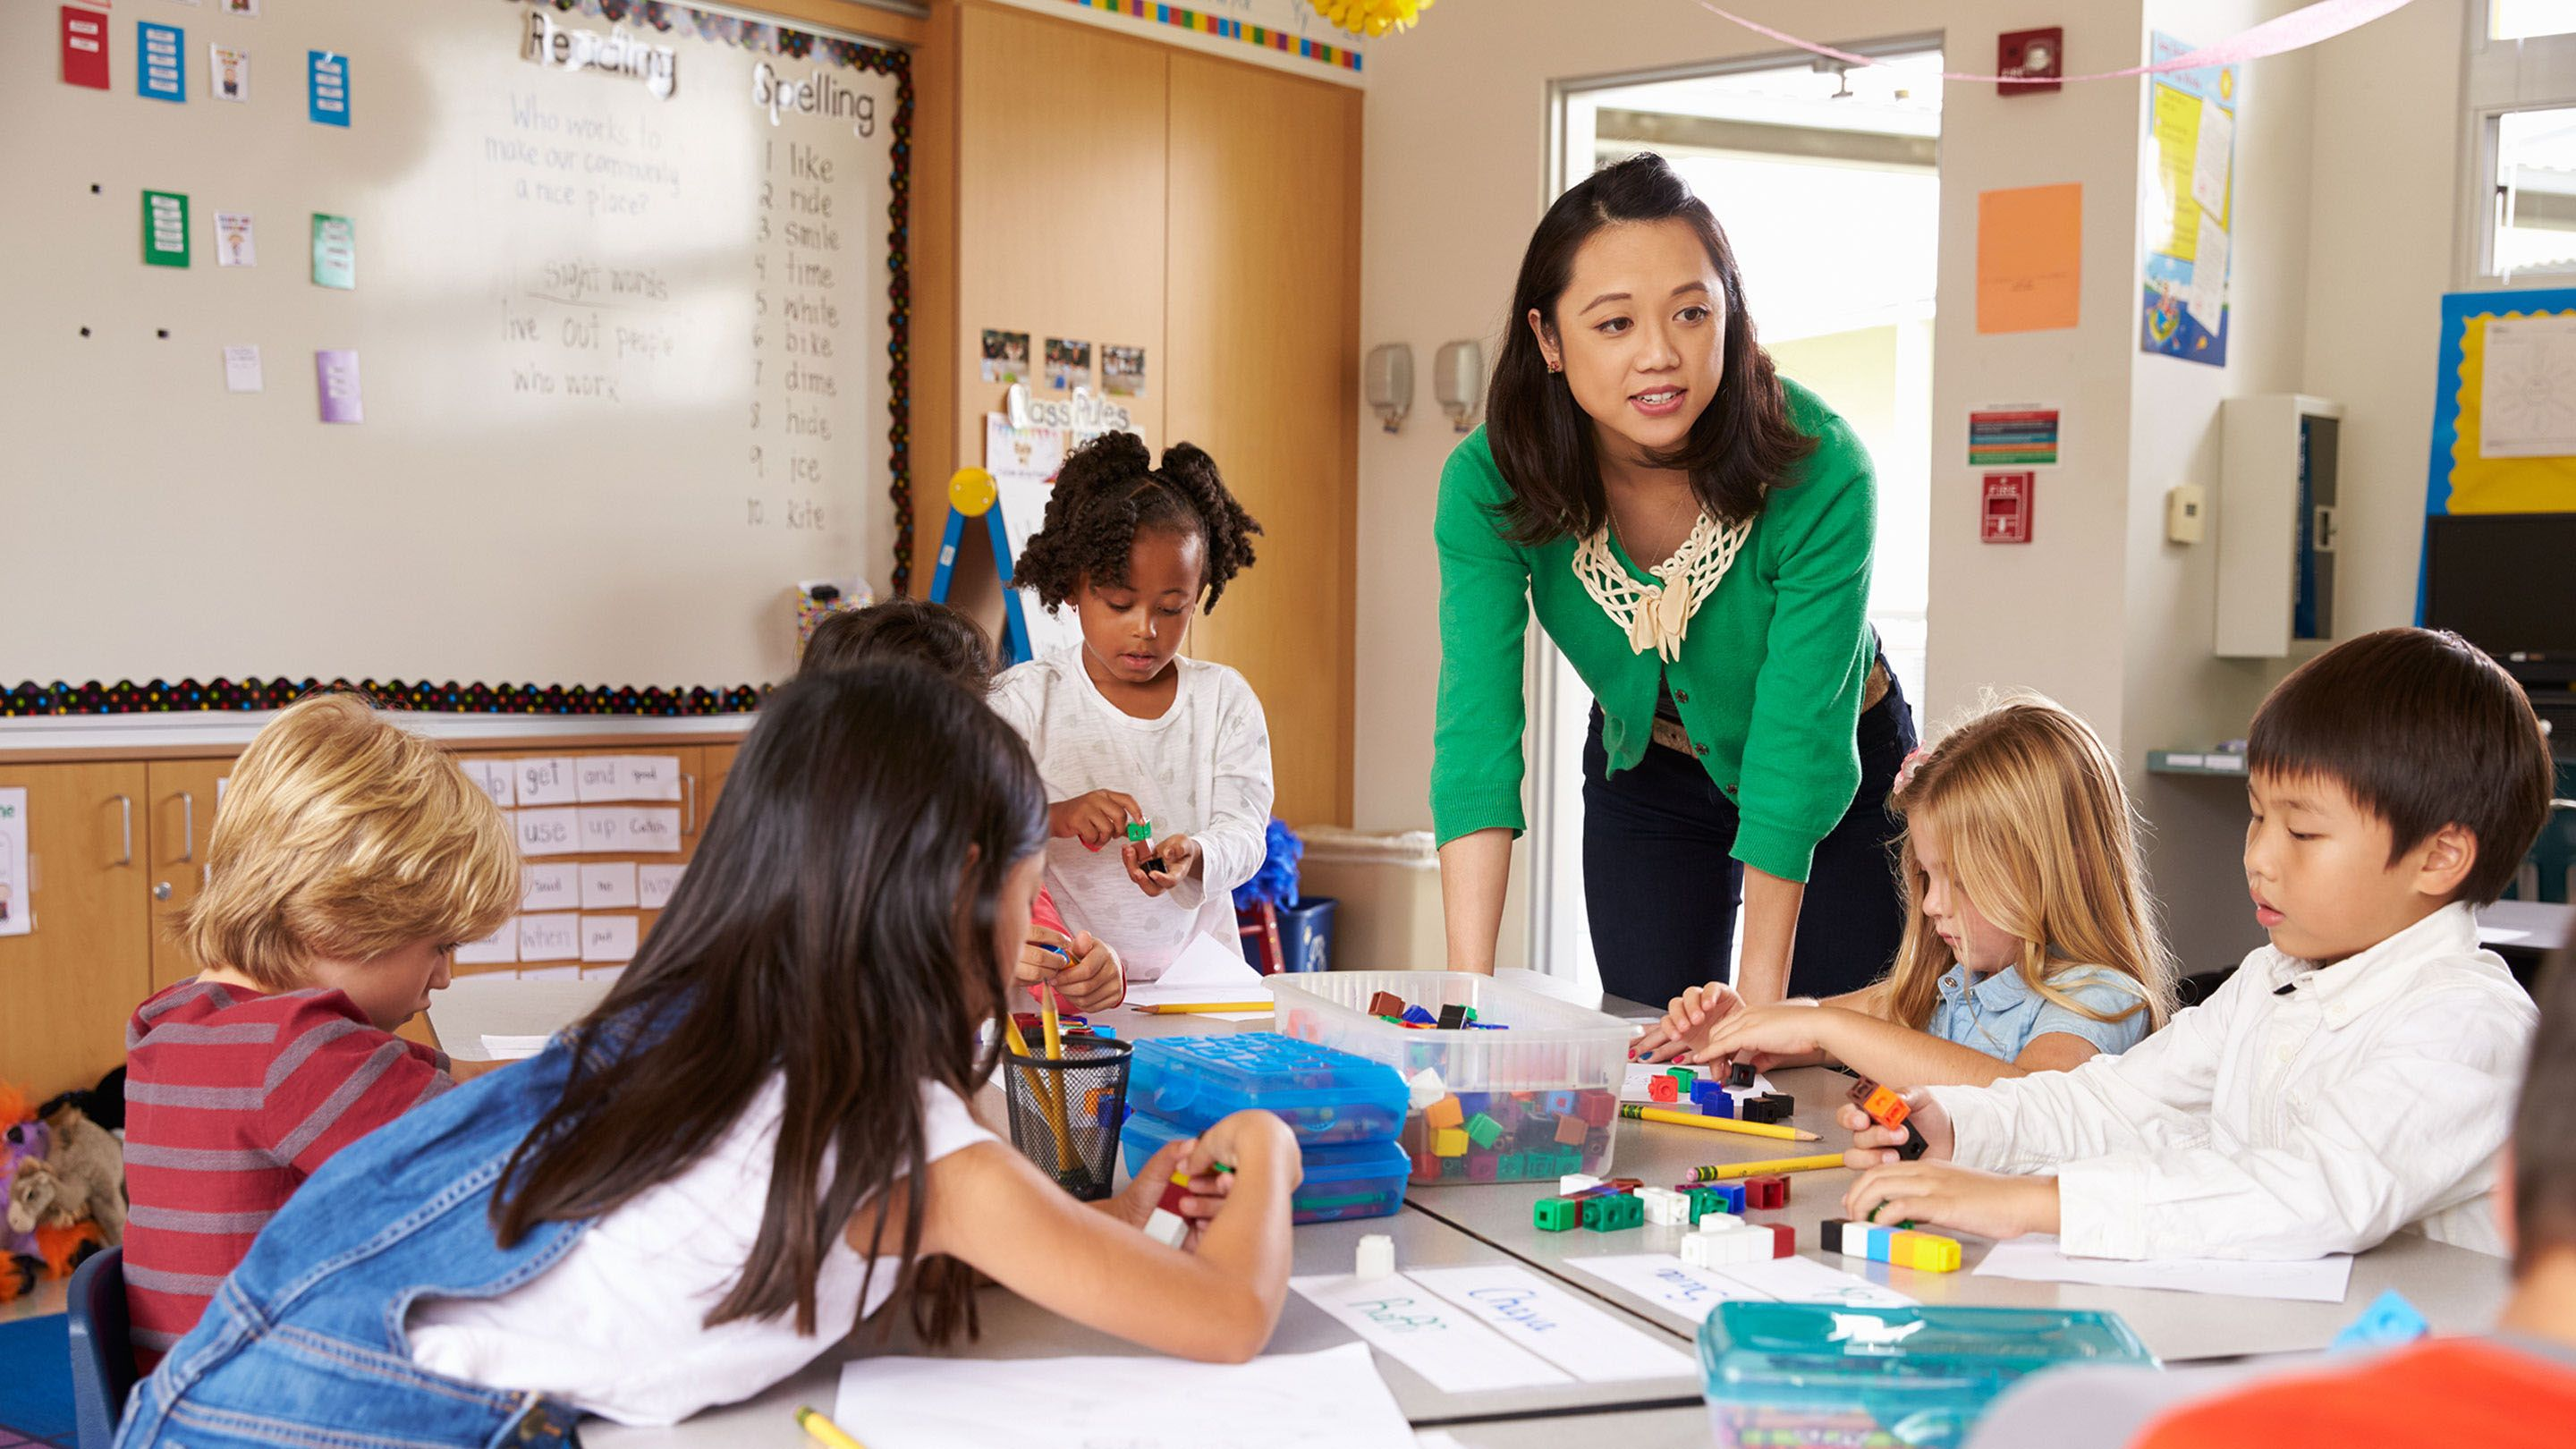 An elementary grade level teacher stands at a table giving instruction while young children are writing.